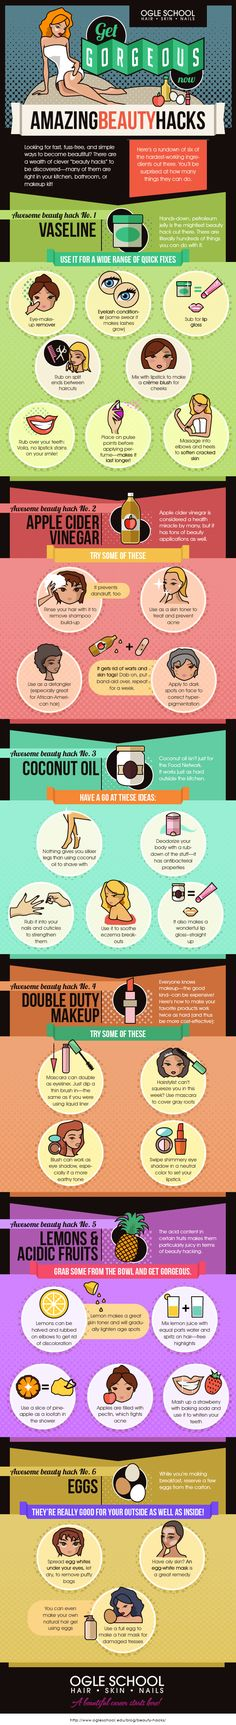 Six Amazing Beauty Hacks